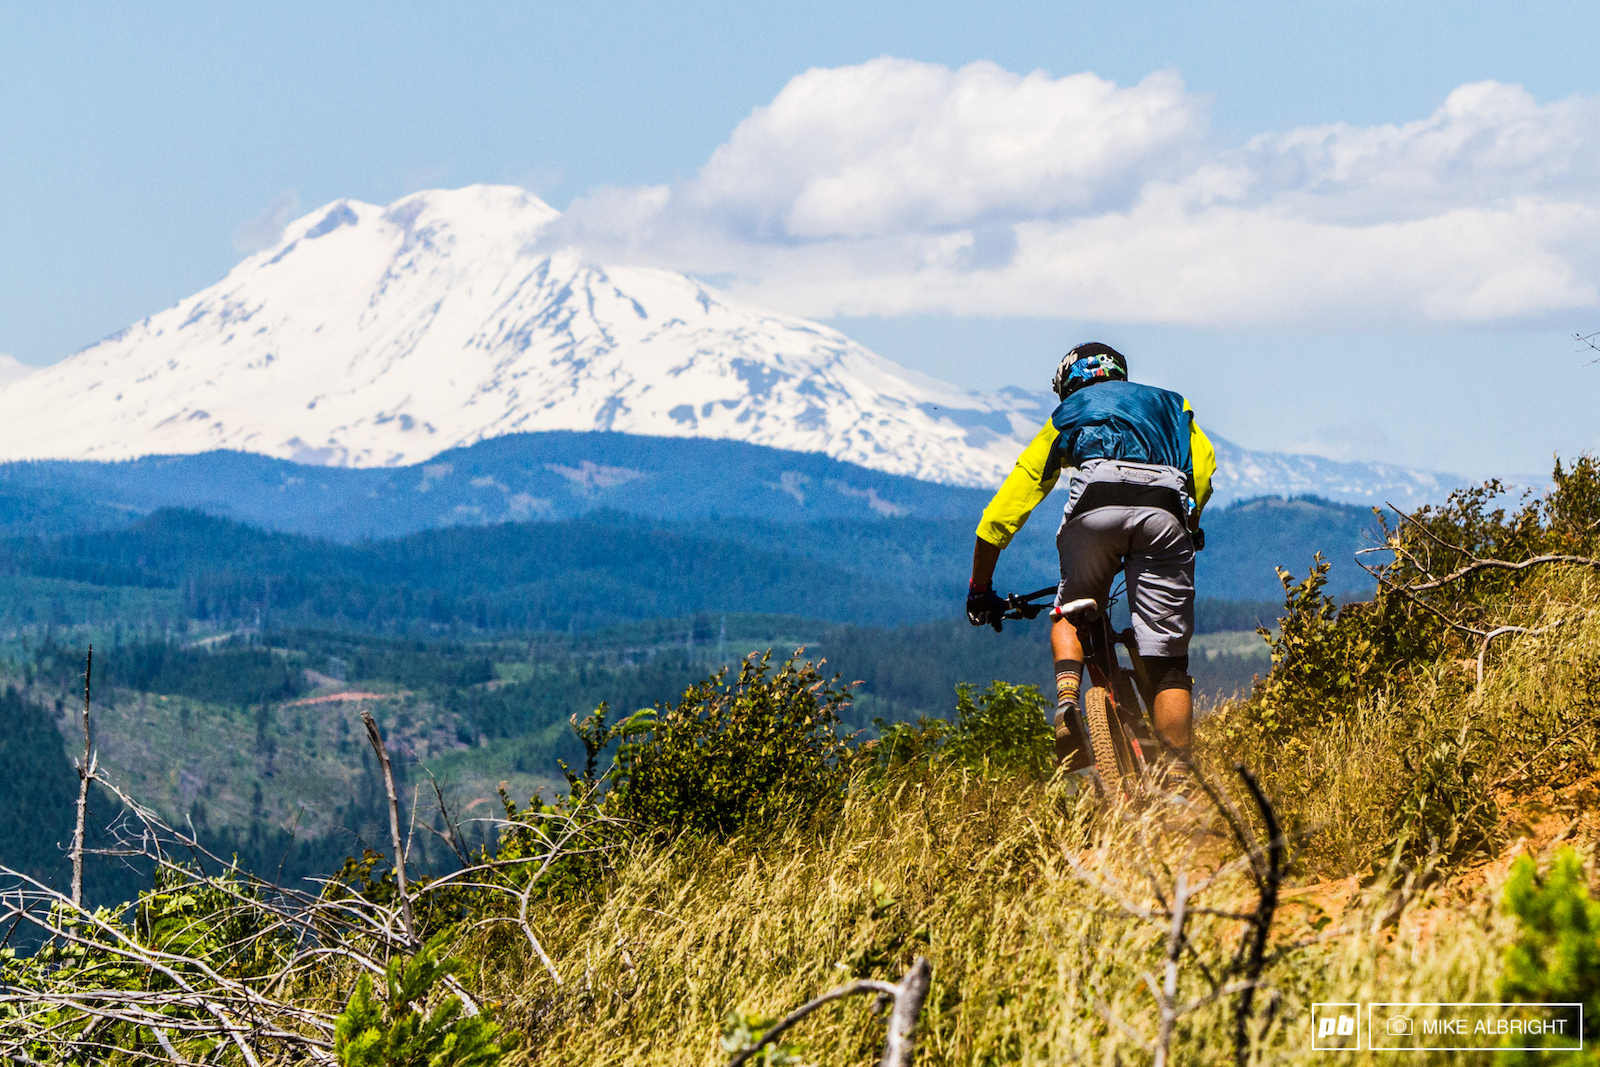 Stage #3 start has some pretty epic view of Mt. Adams in Washington State.